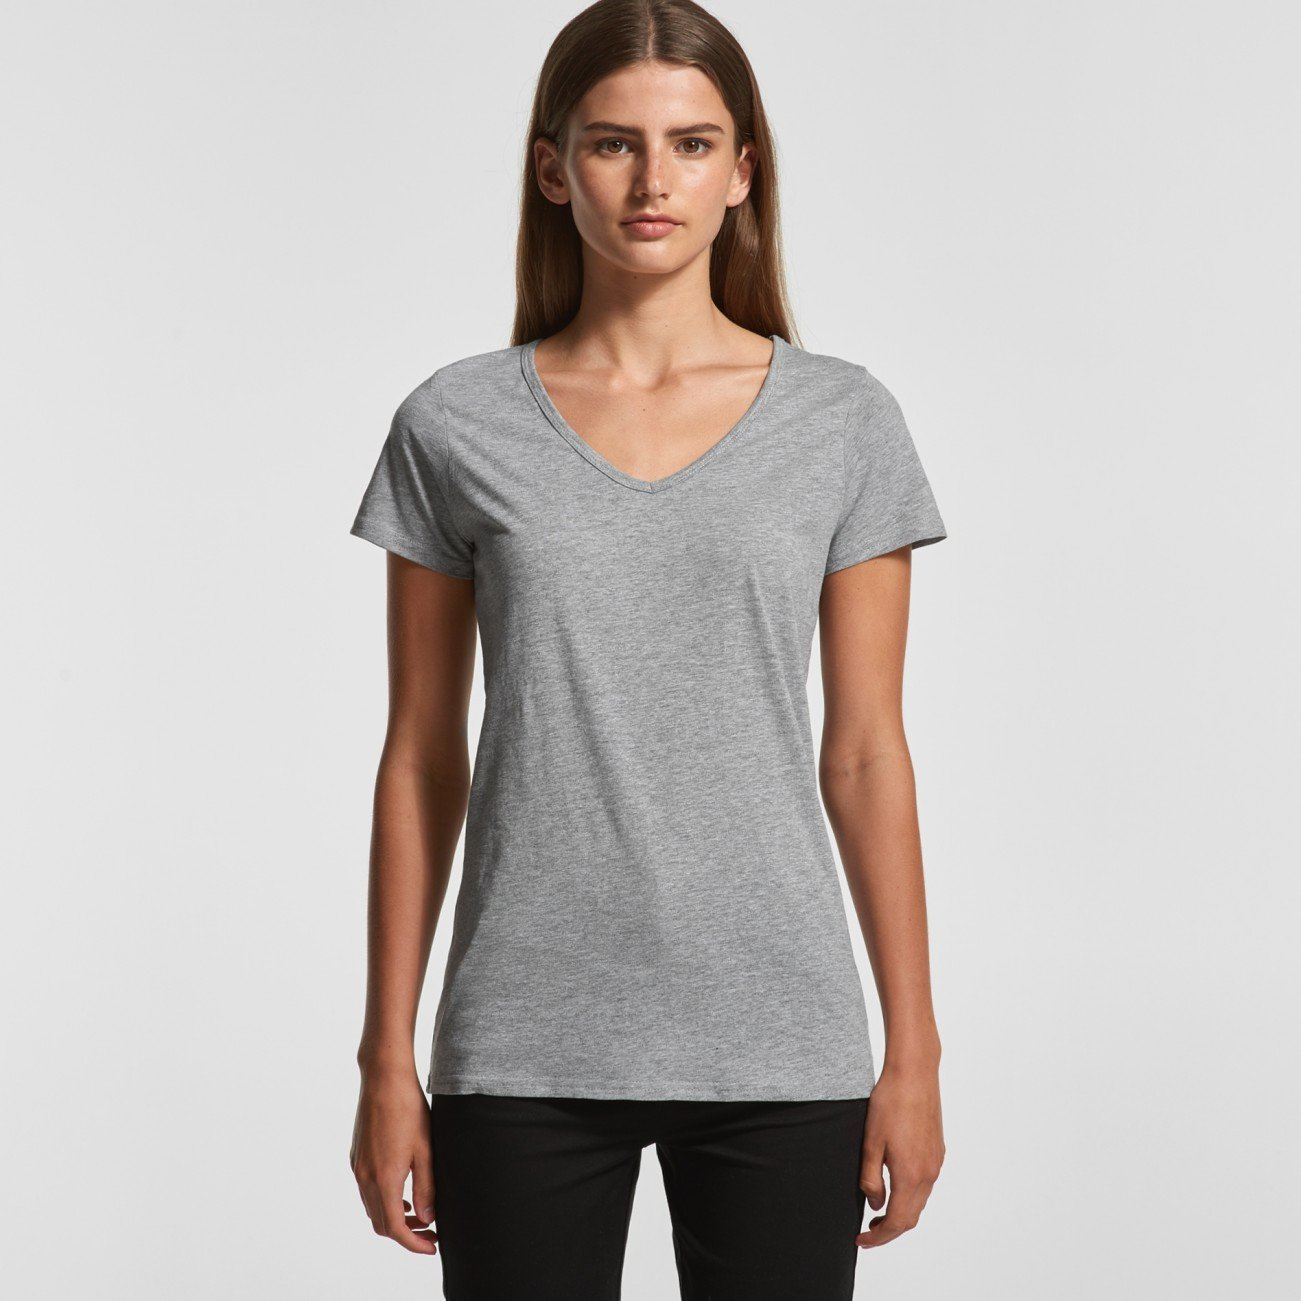 Women's Bevel V-Neck Tee